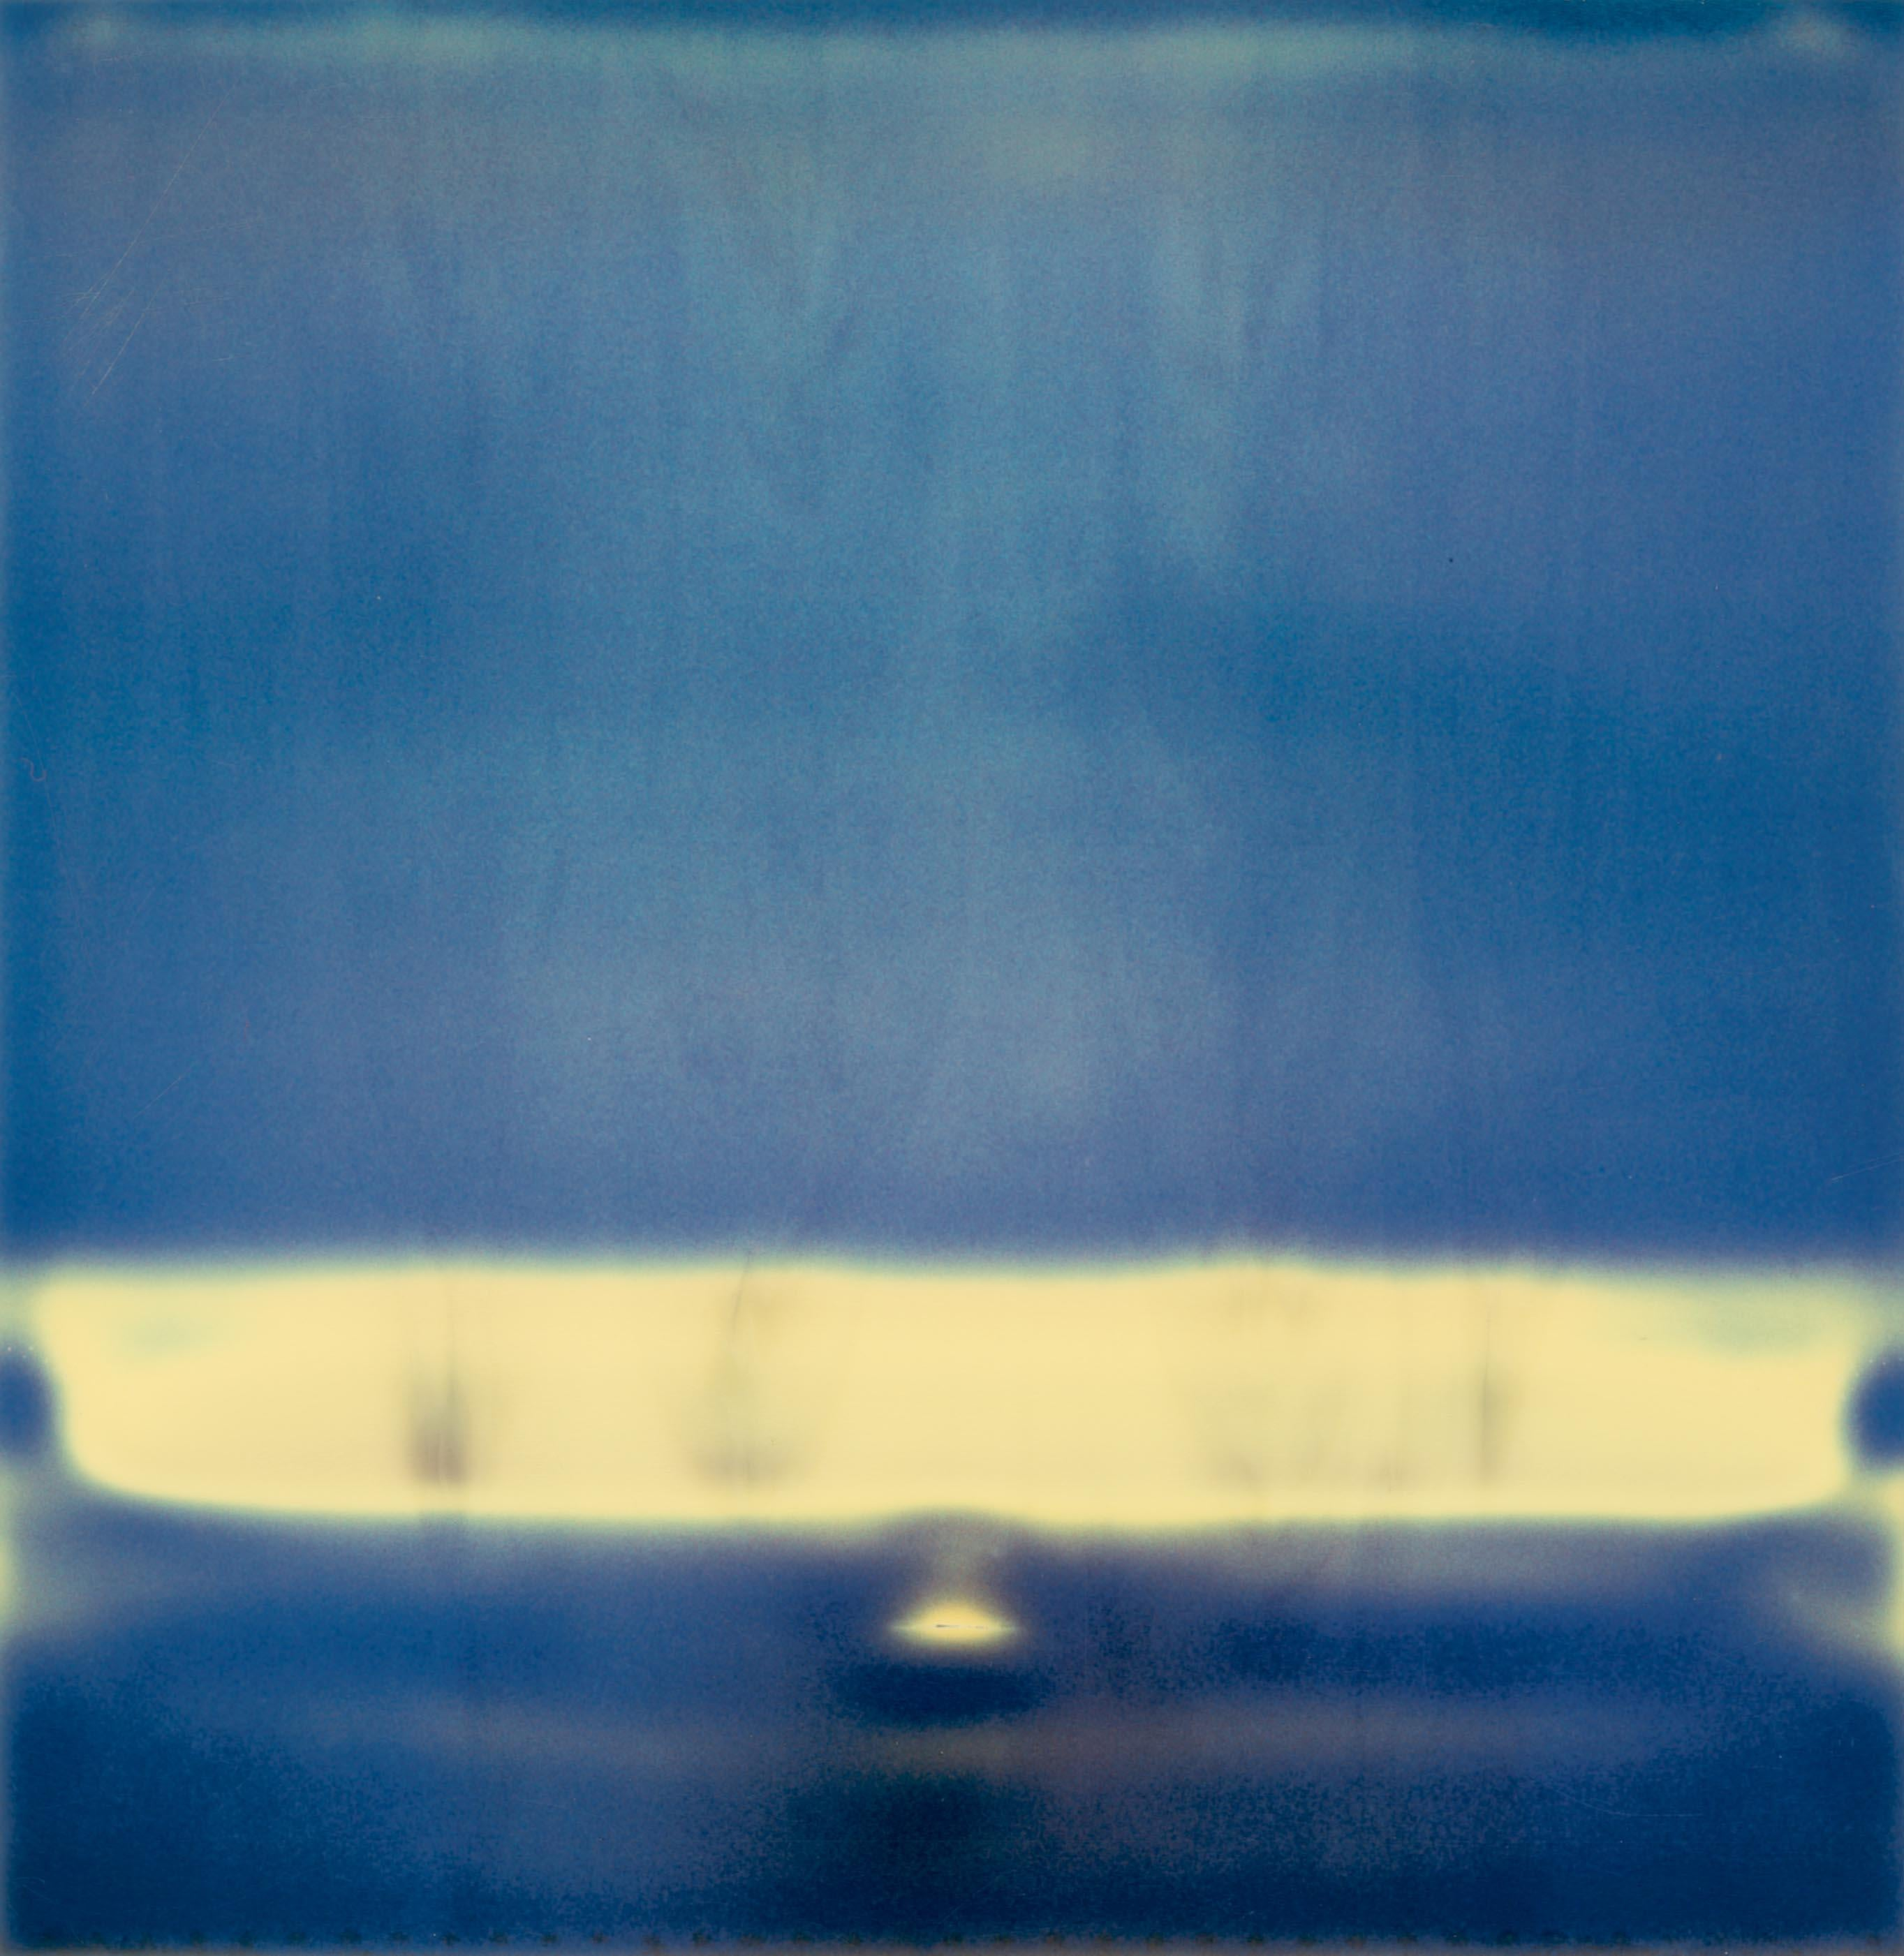 Dreamscape (Wastelands) - Contemporary, Abstract, Polaroid, Expired, Photograph